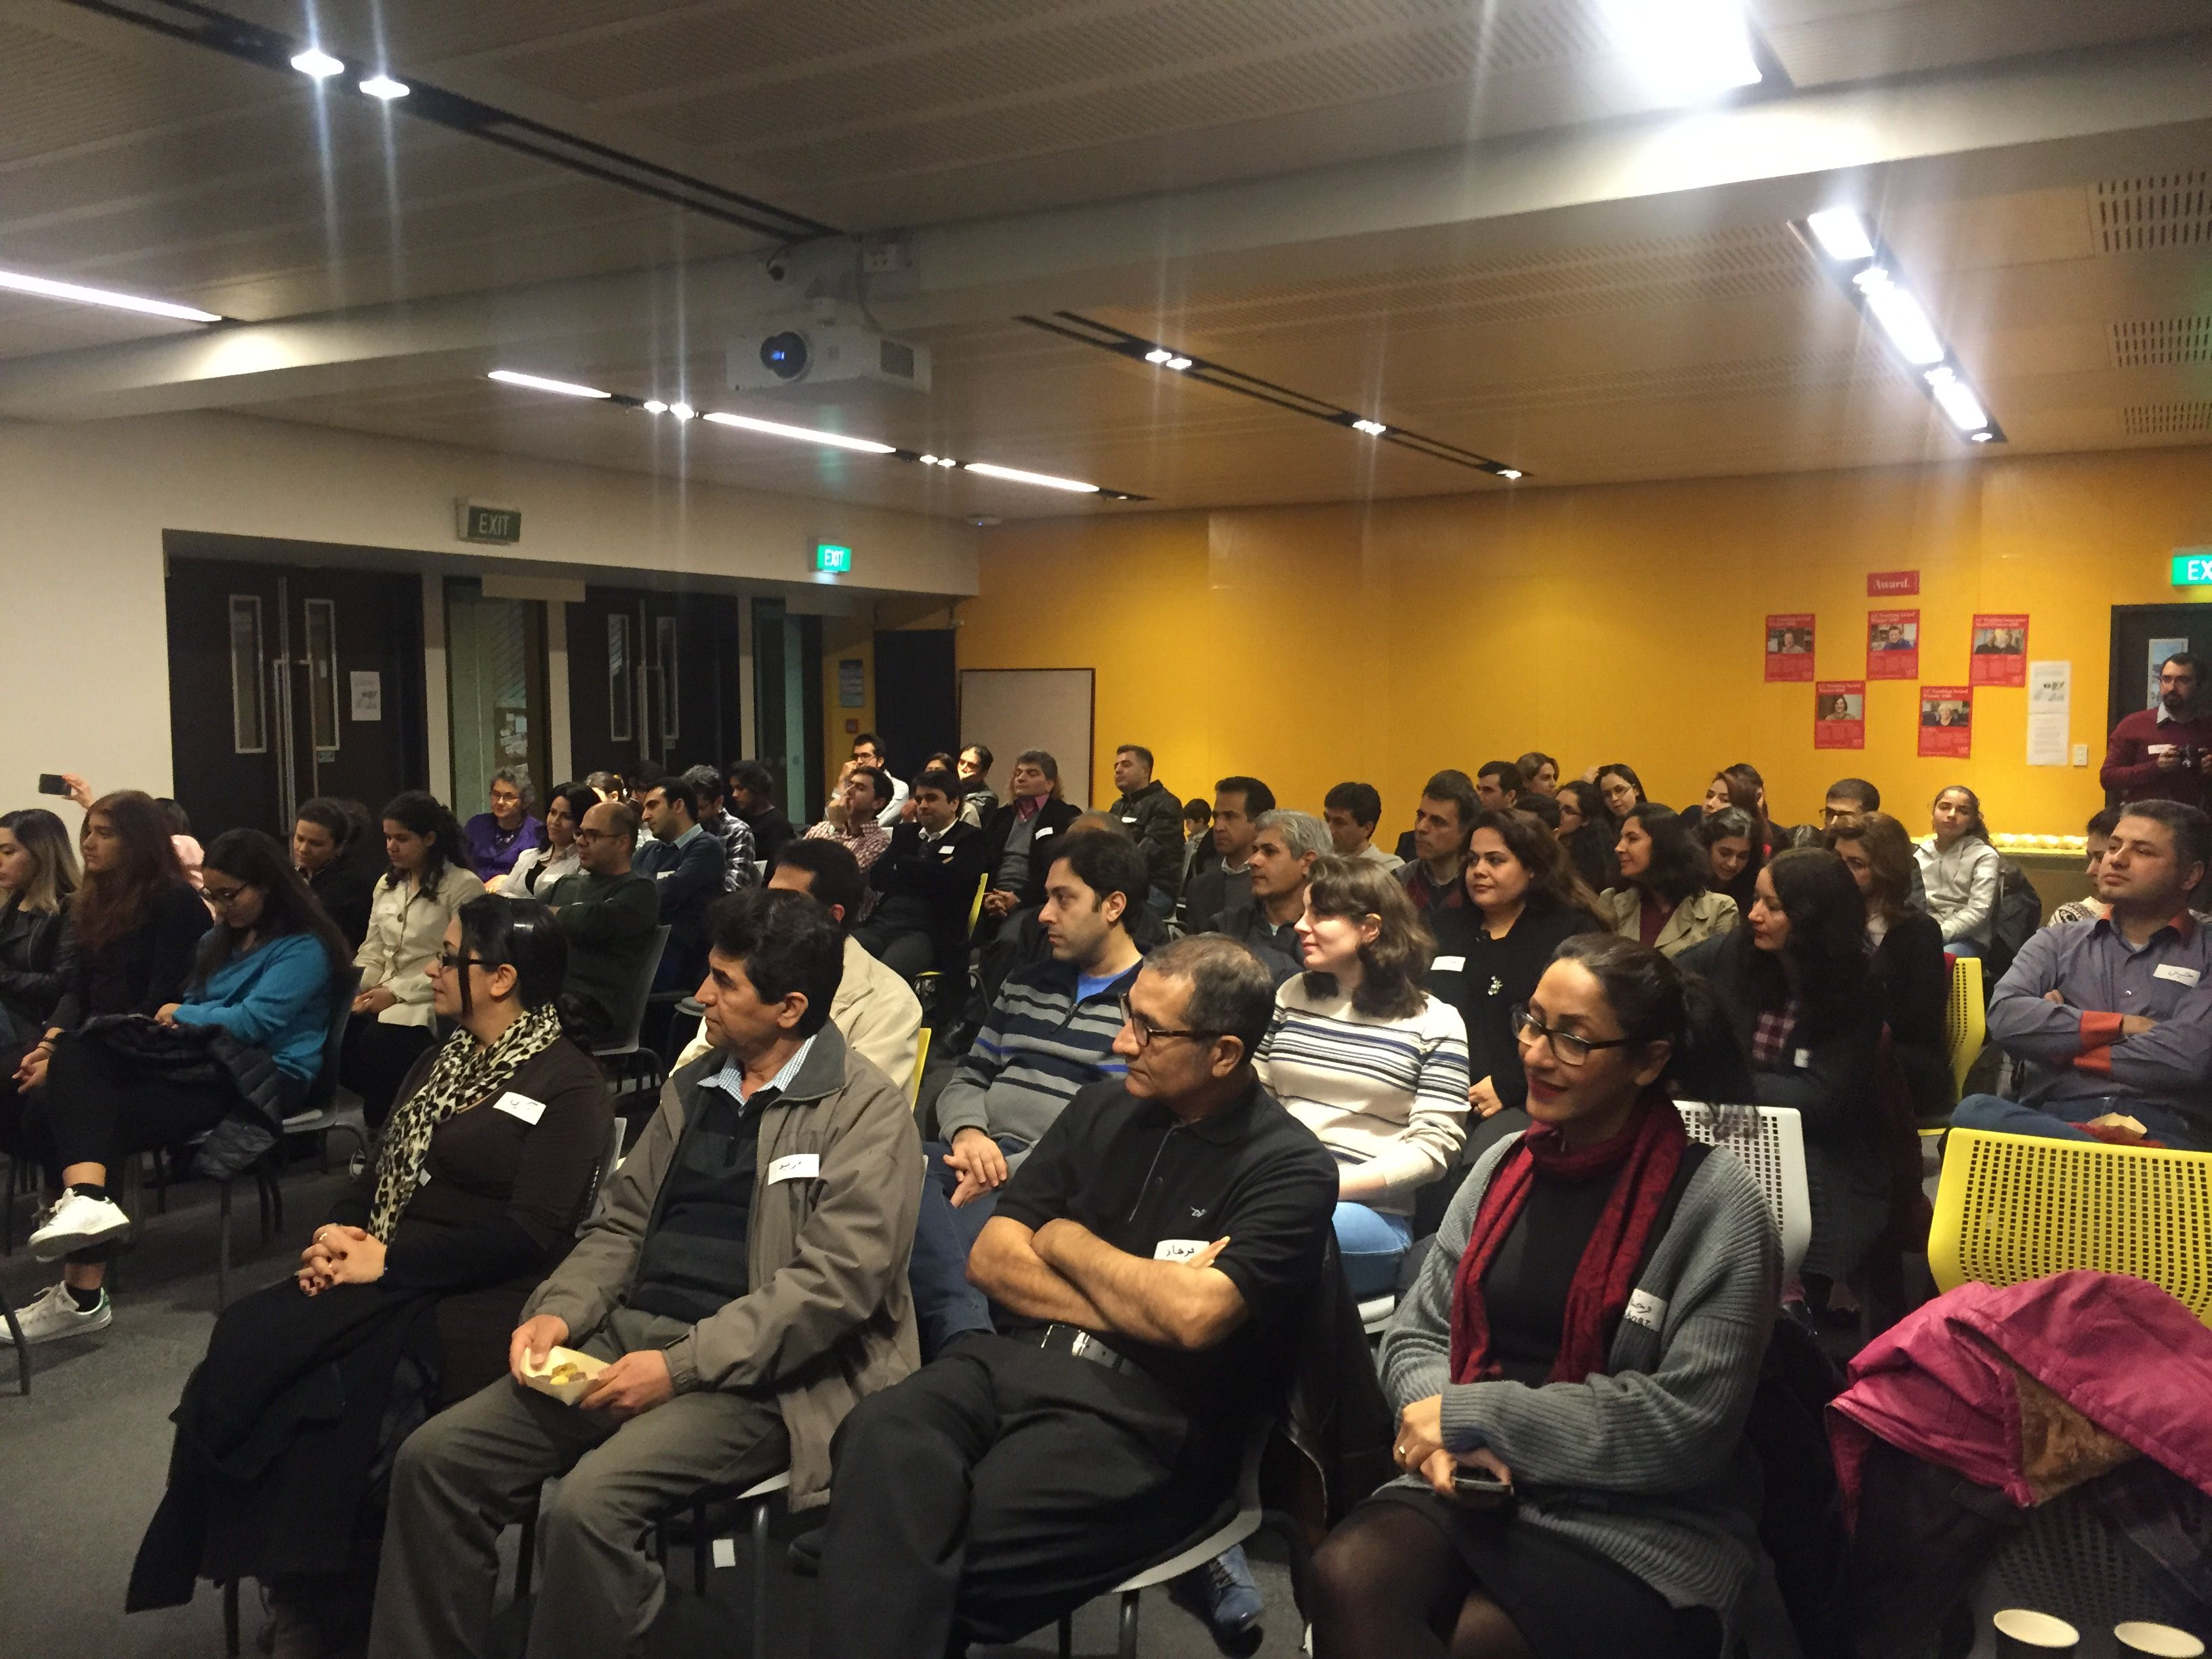 Close to 70 people attended the traditional Iranian Yalda Night celebration at the University of Canterbury